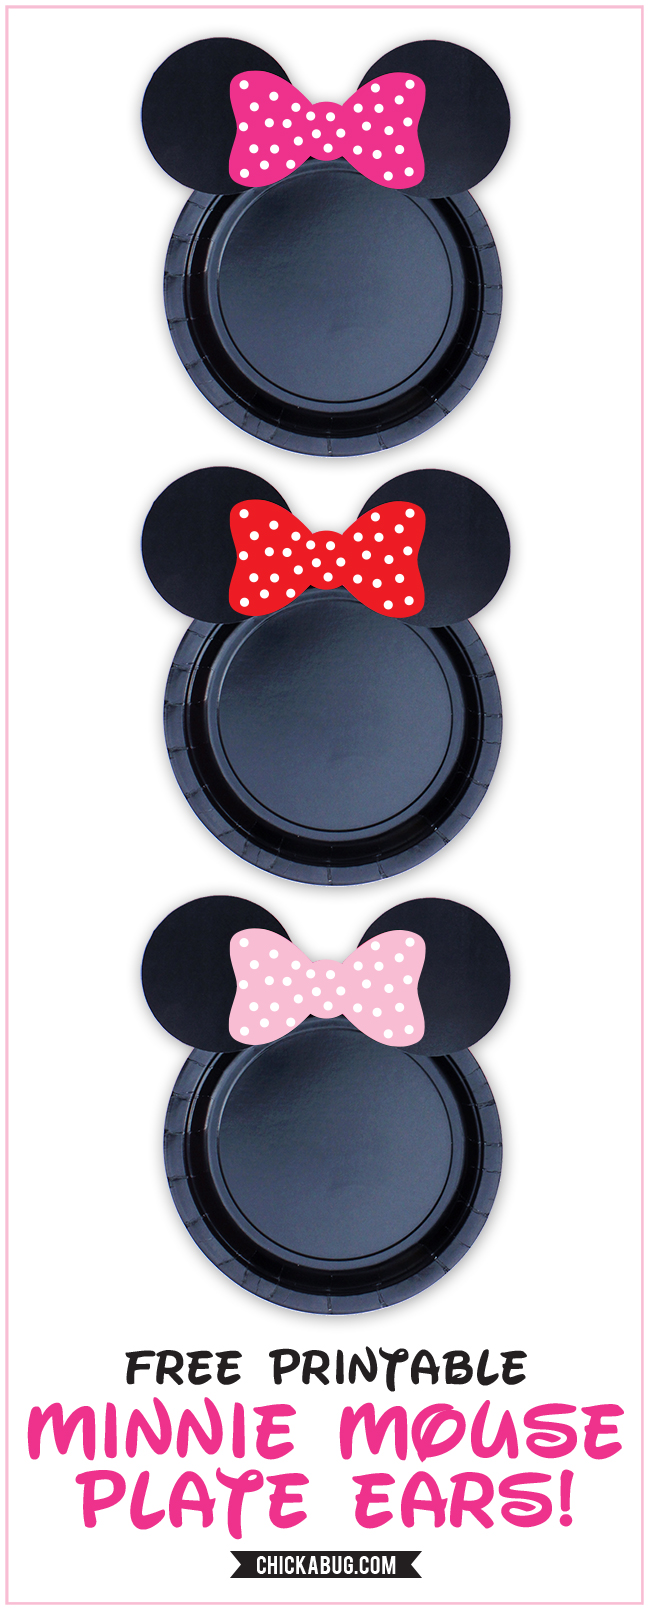 Free Printable Minnie Mouse Plate Ears In HOT PINK RED And BABY